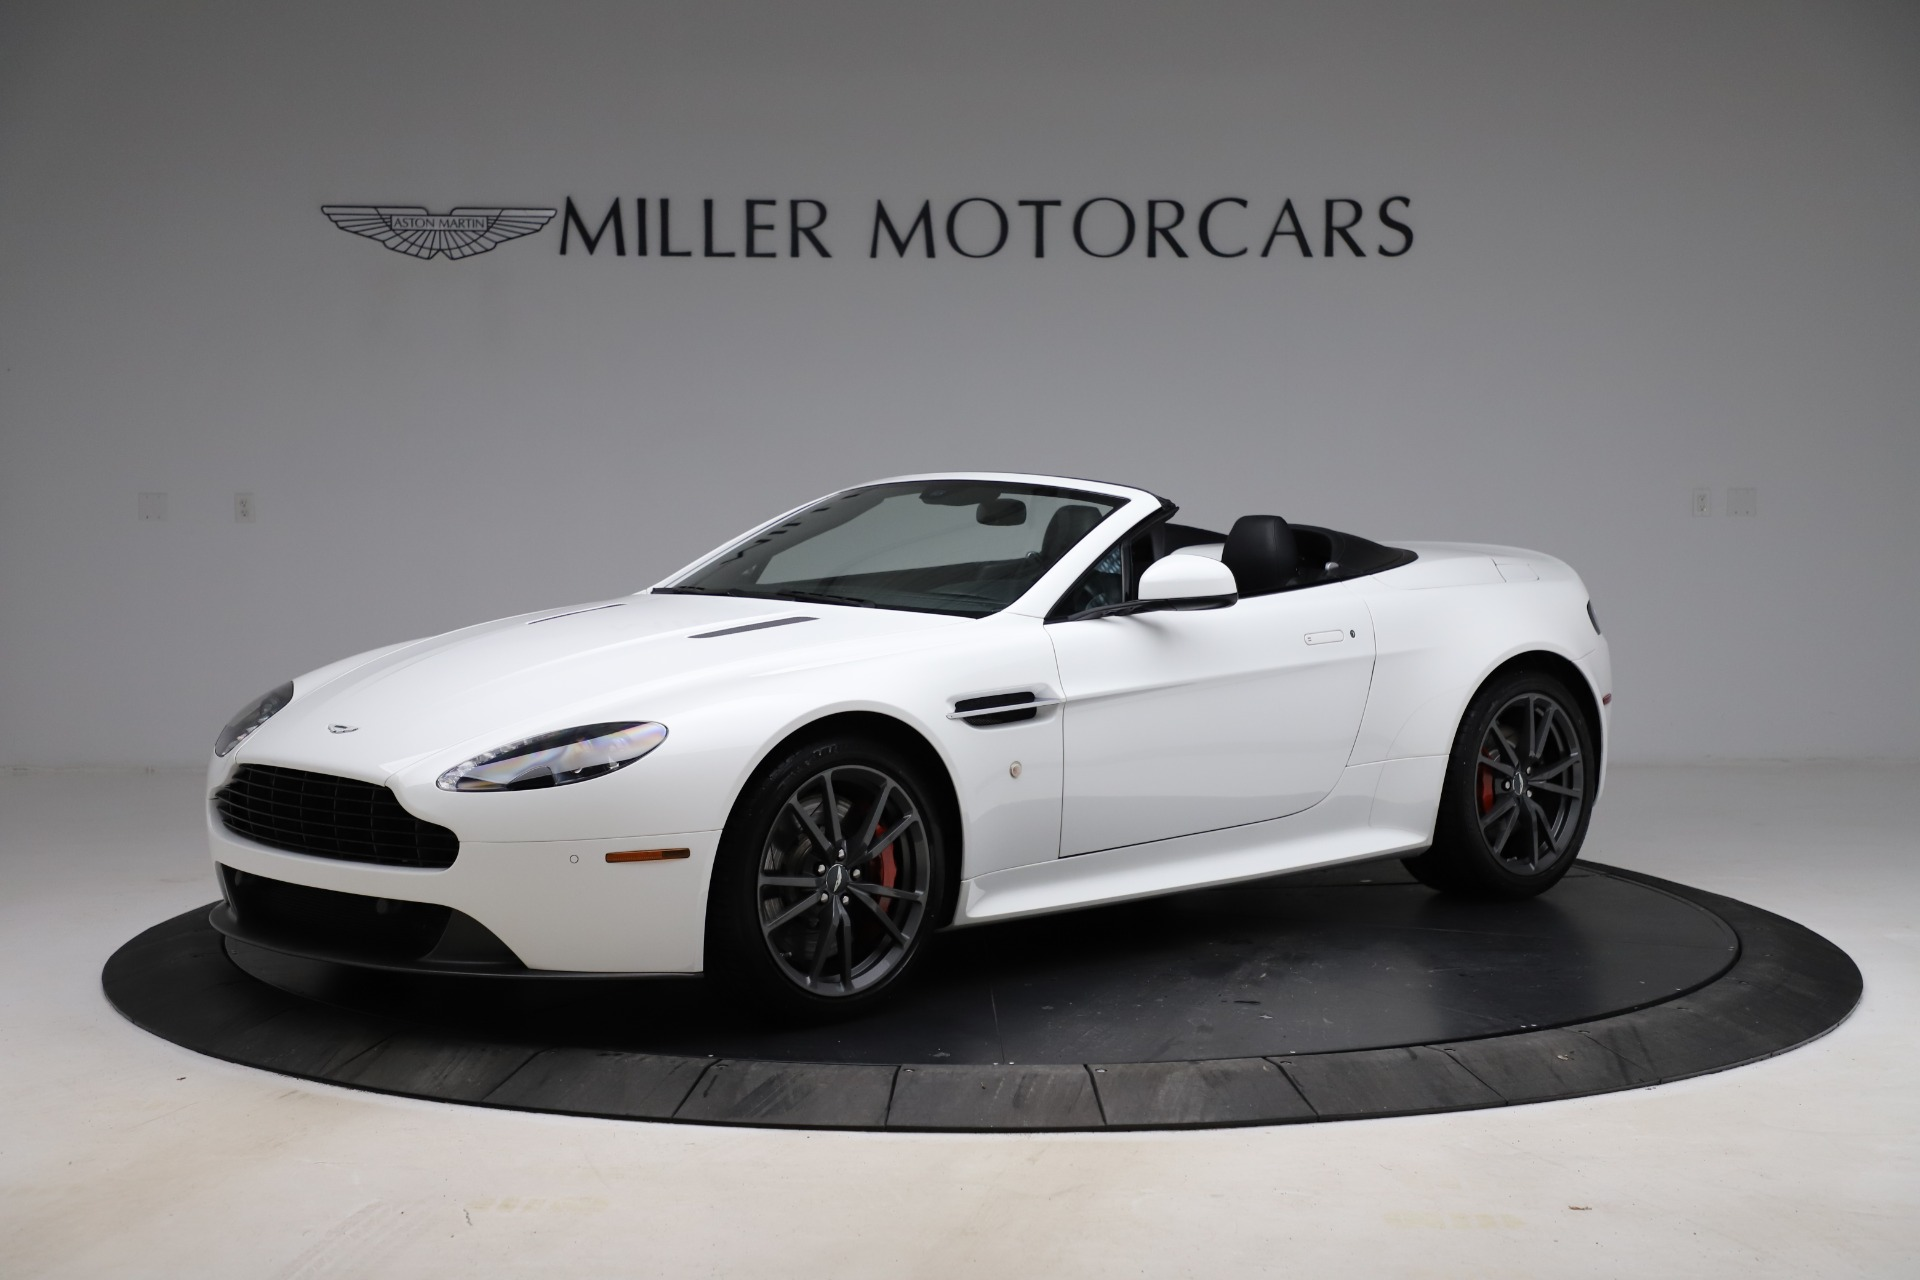 New 2015 Aston Martin Vantage GT GT Roadster for sale Sold at Bugatti of Greenwich in Greenwich CT 06830 1